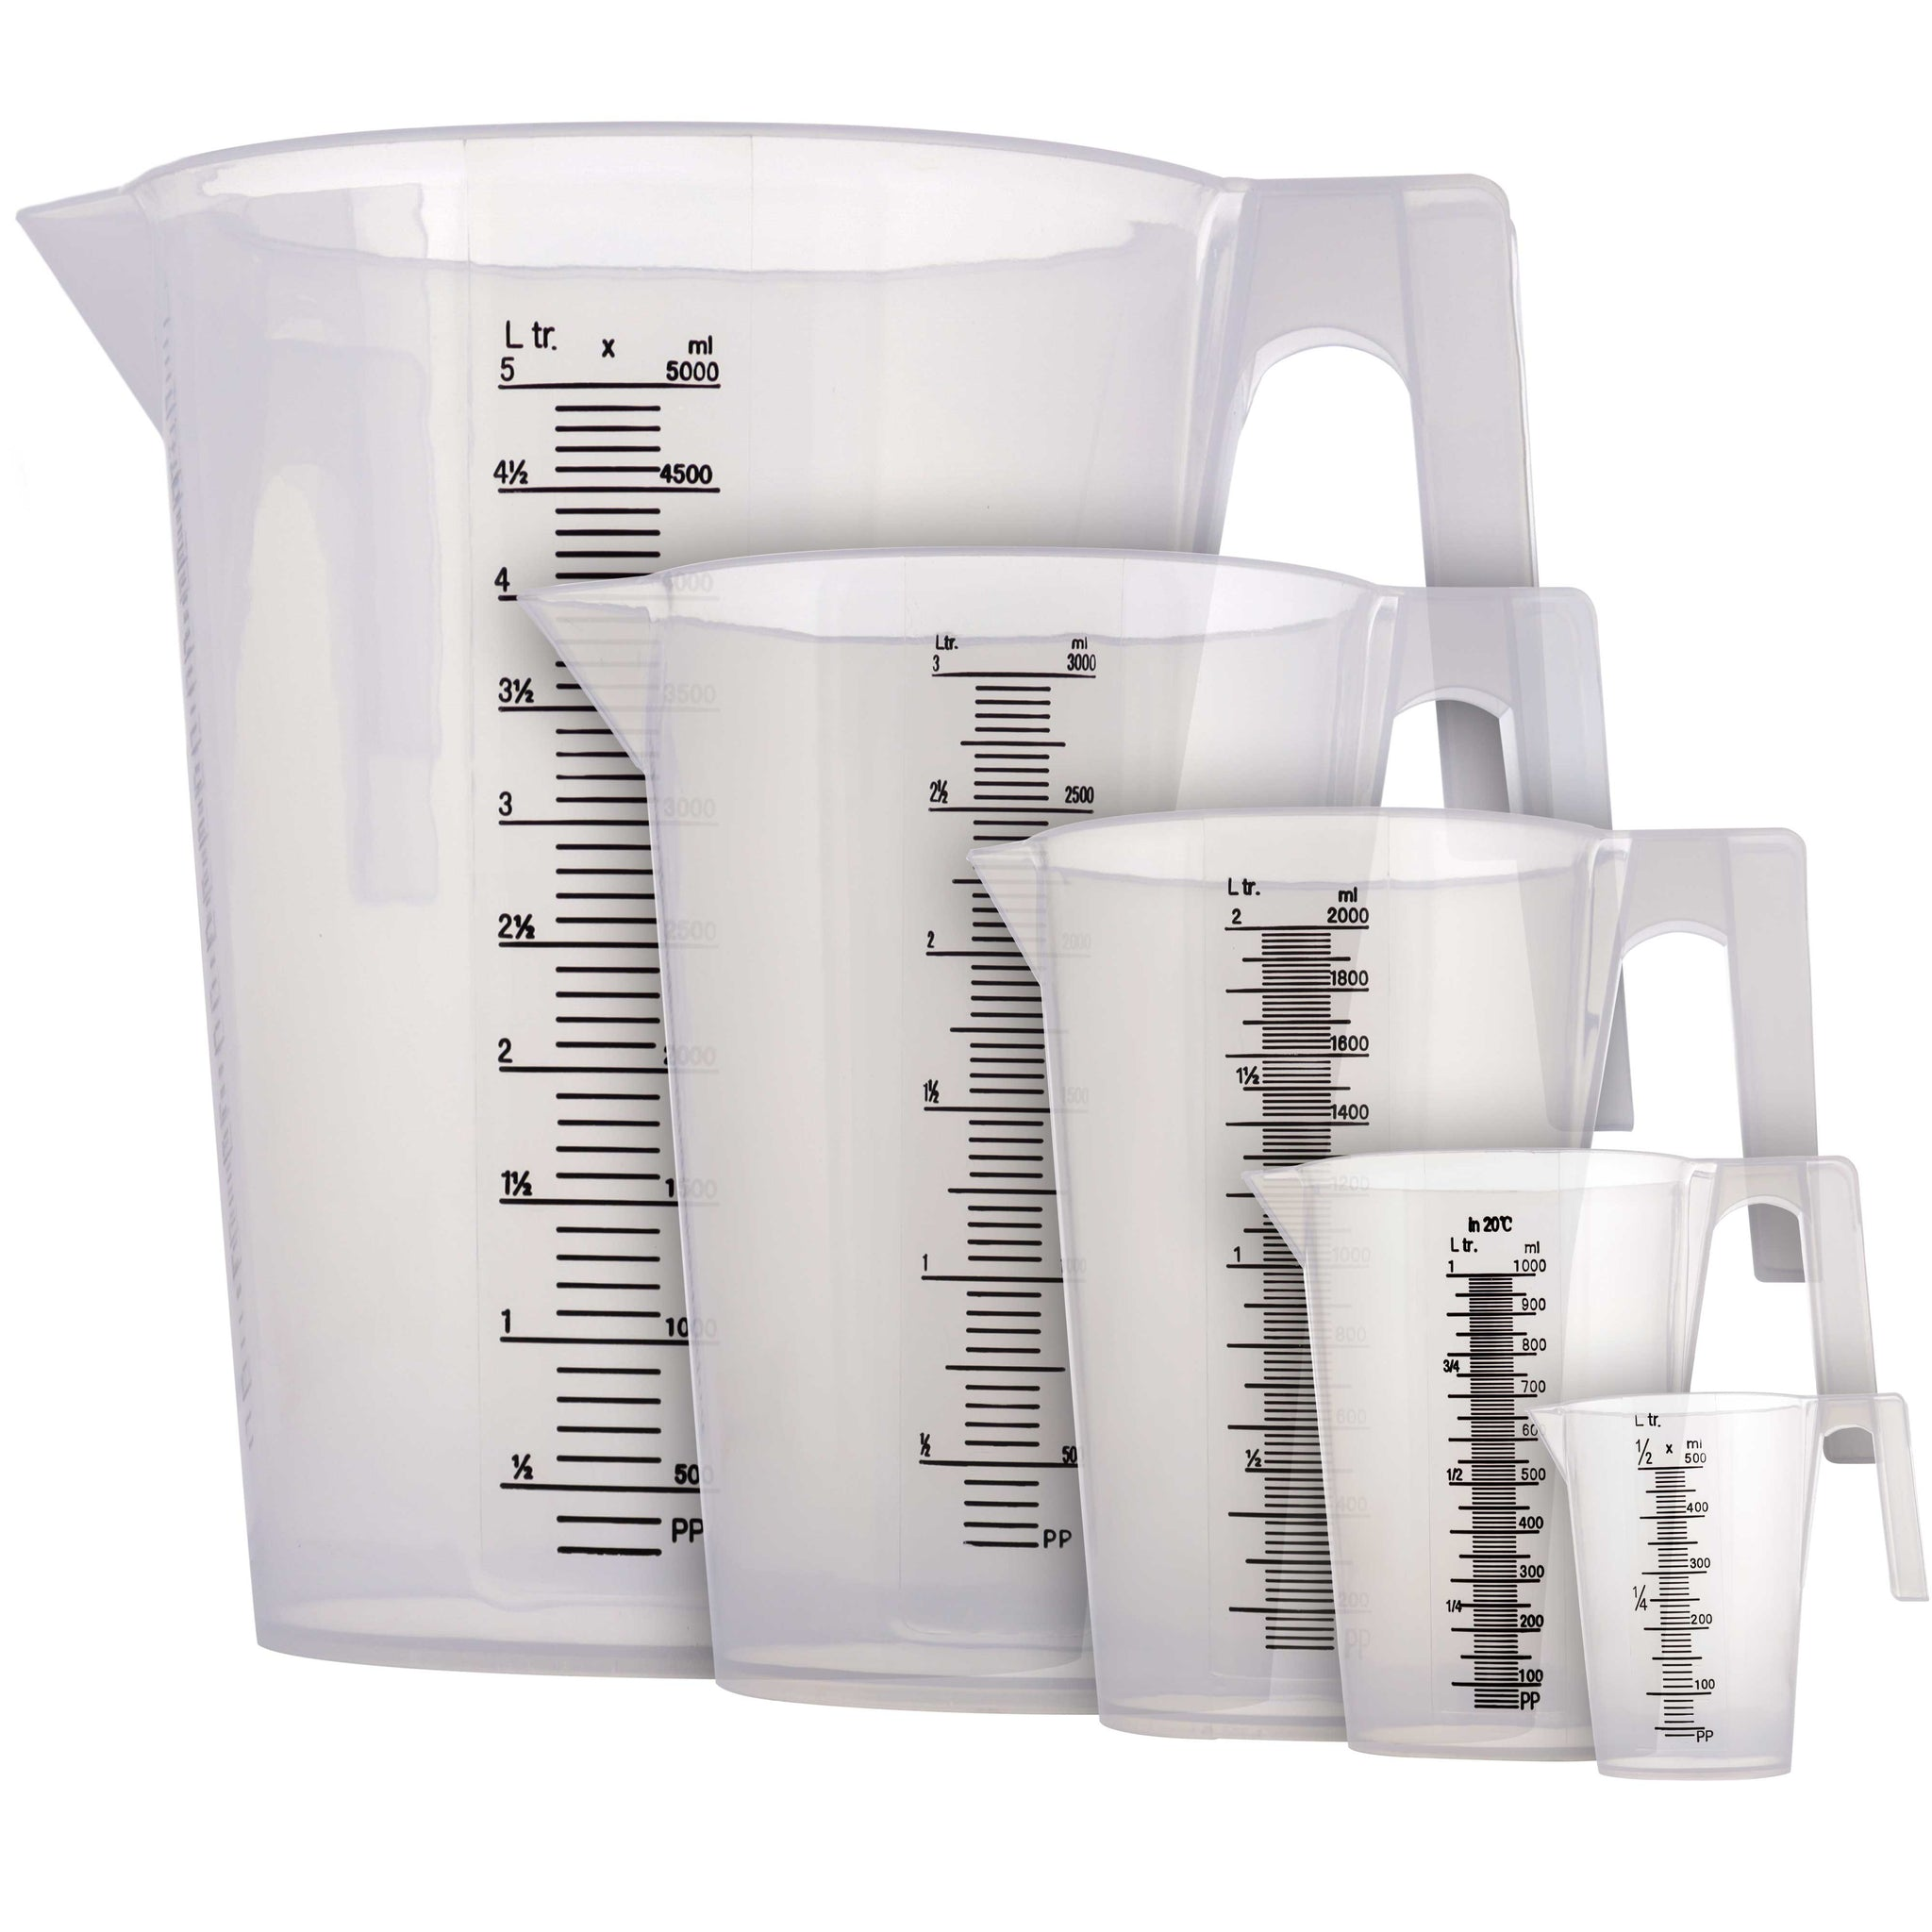 TCP Global 5 Piece Set of Plastic Graduated Measuring Mixing Pitchers - 500, 1000, 2000, 3000, 5000 ml Sizes - Pouring Cups Measure Mix Paint, Cooking